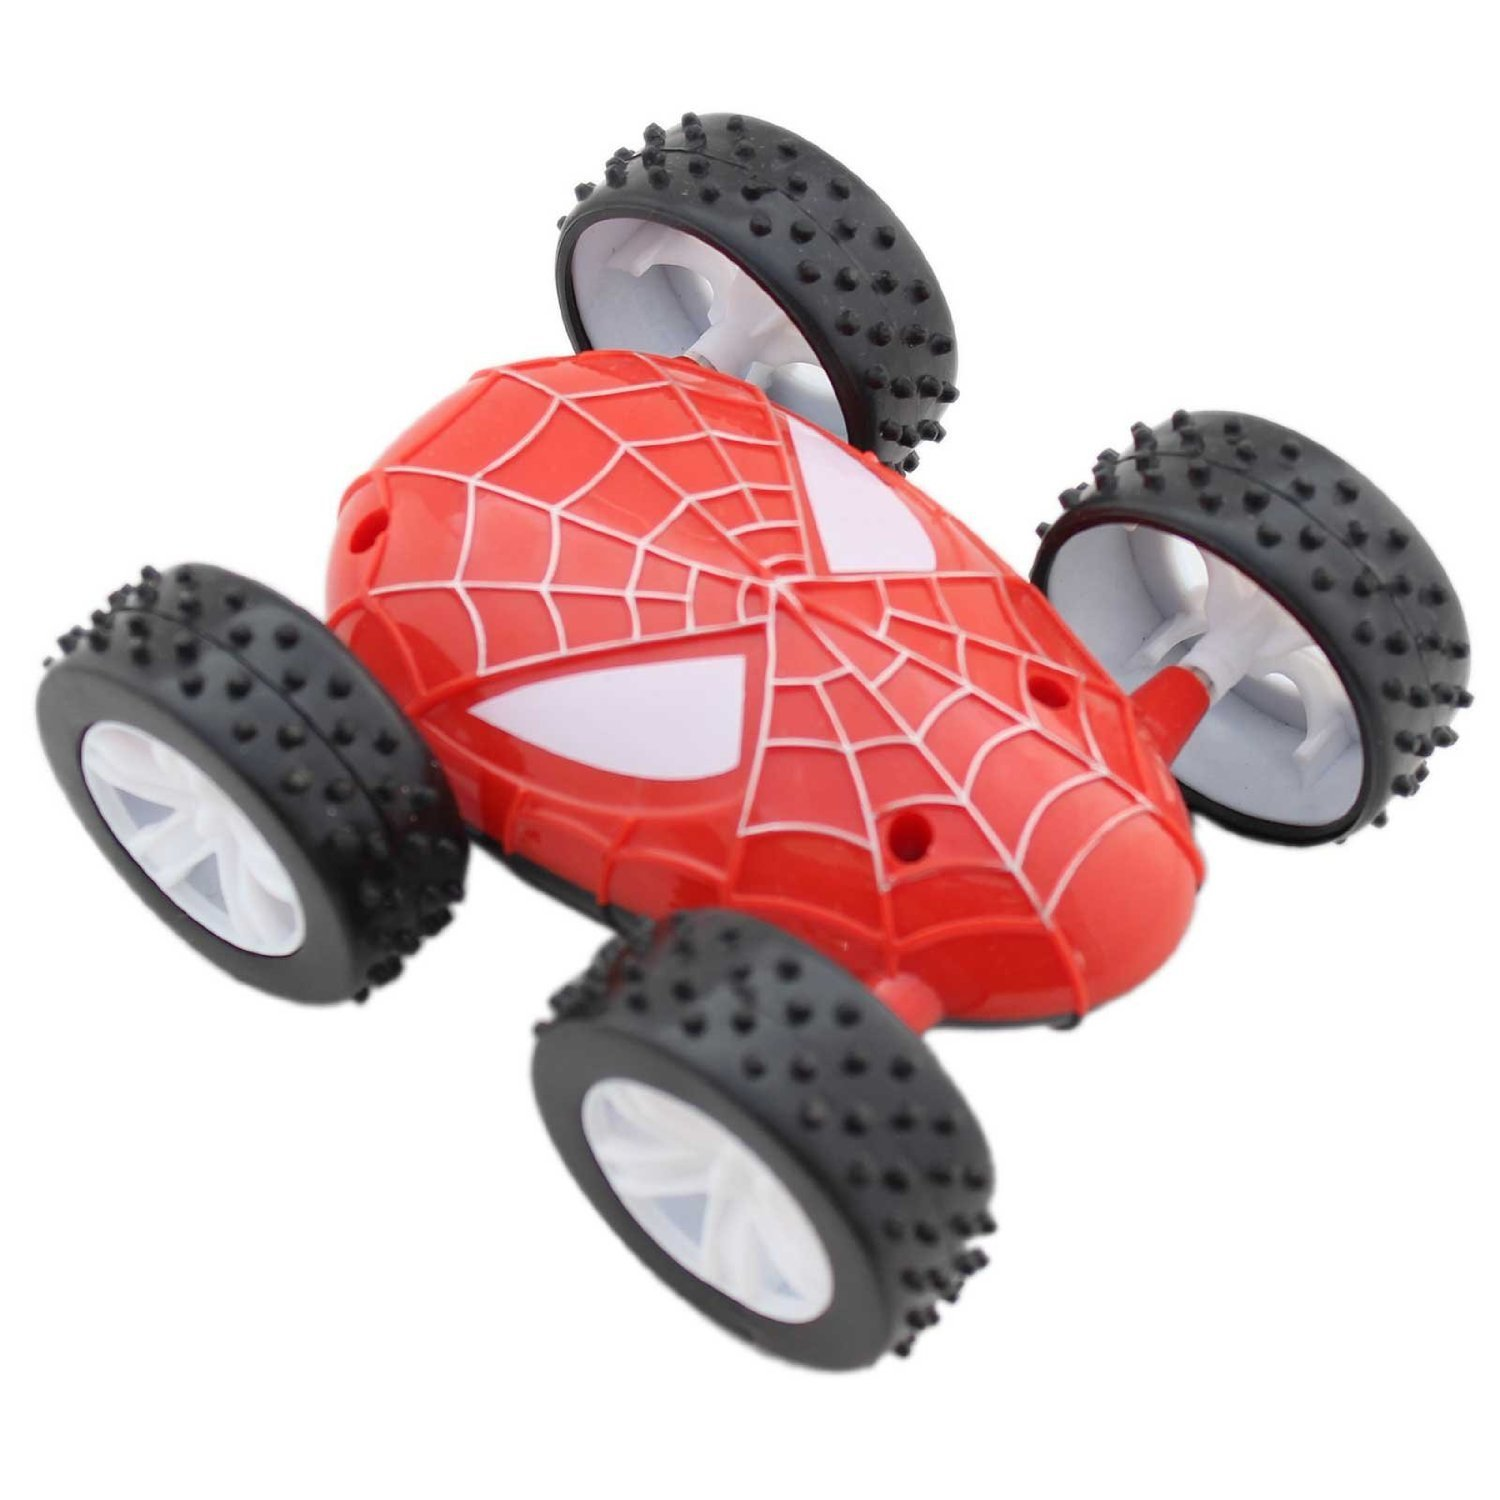 Buy ToyTree Spiderman Venom Two Sided Car Online at Low Prices in ...